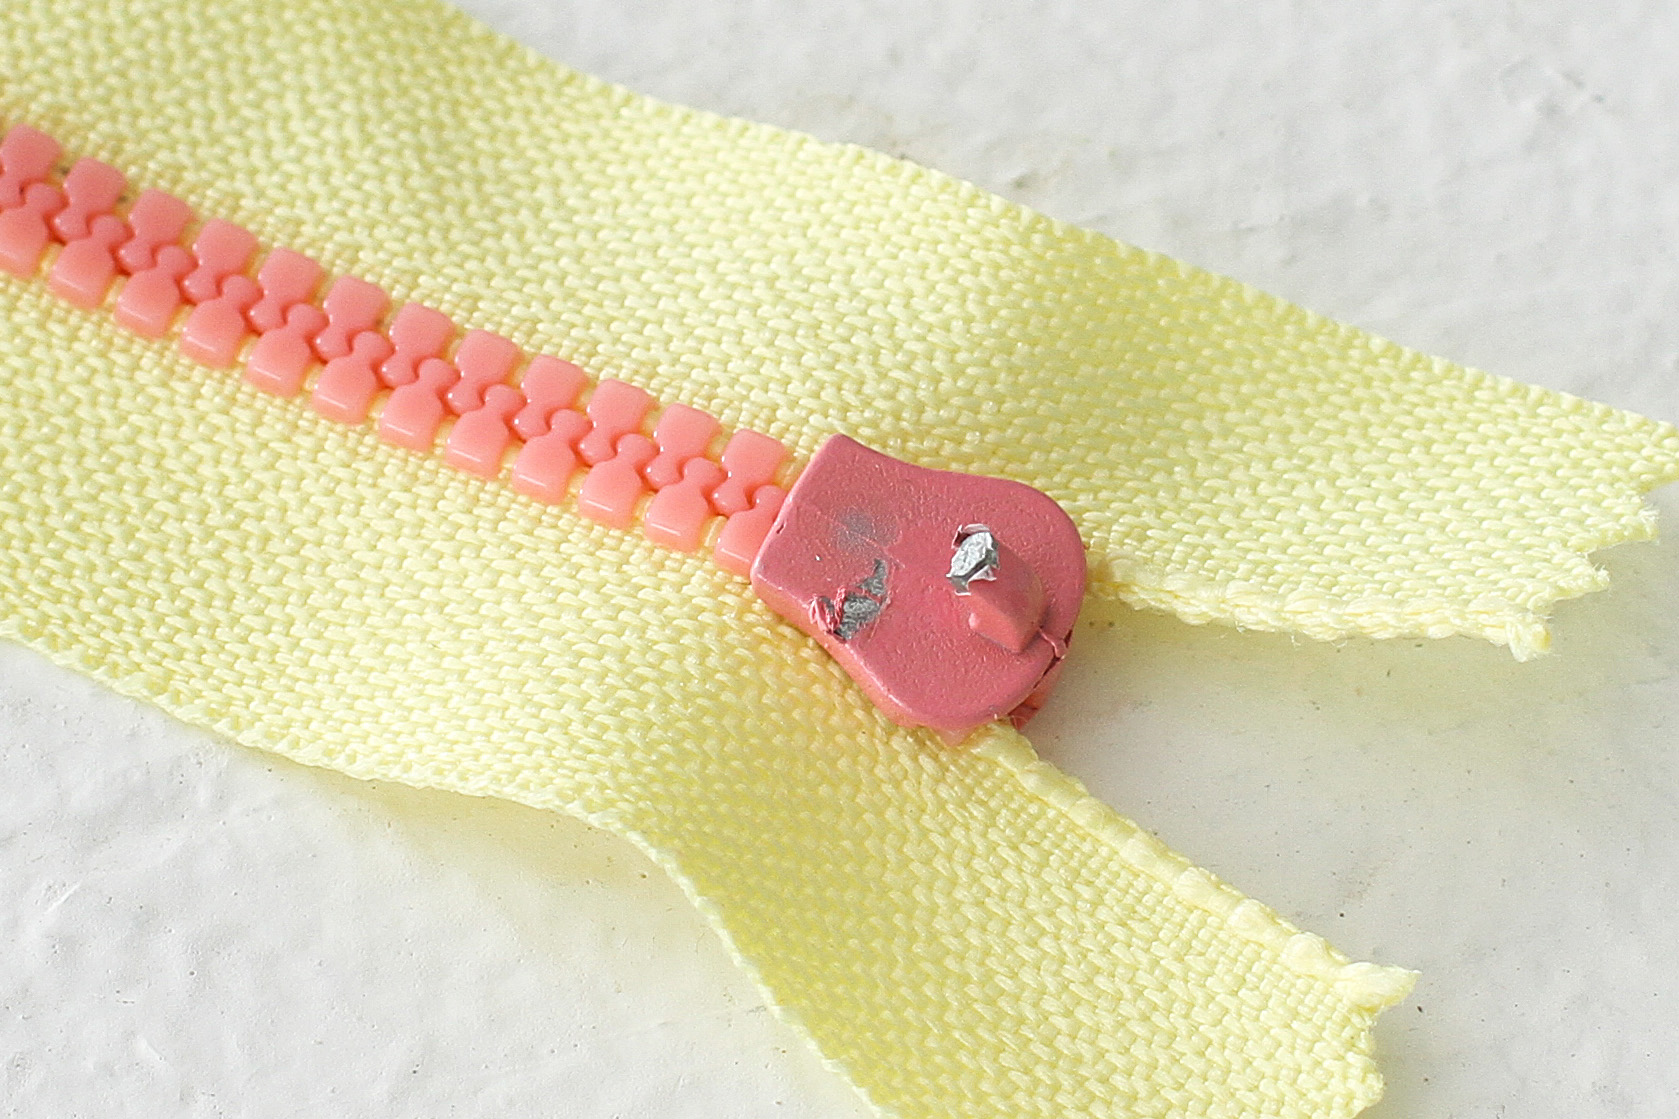 How to Fix Every Broken Zipper Issue | Apartment Therapy